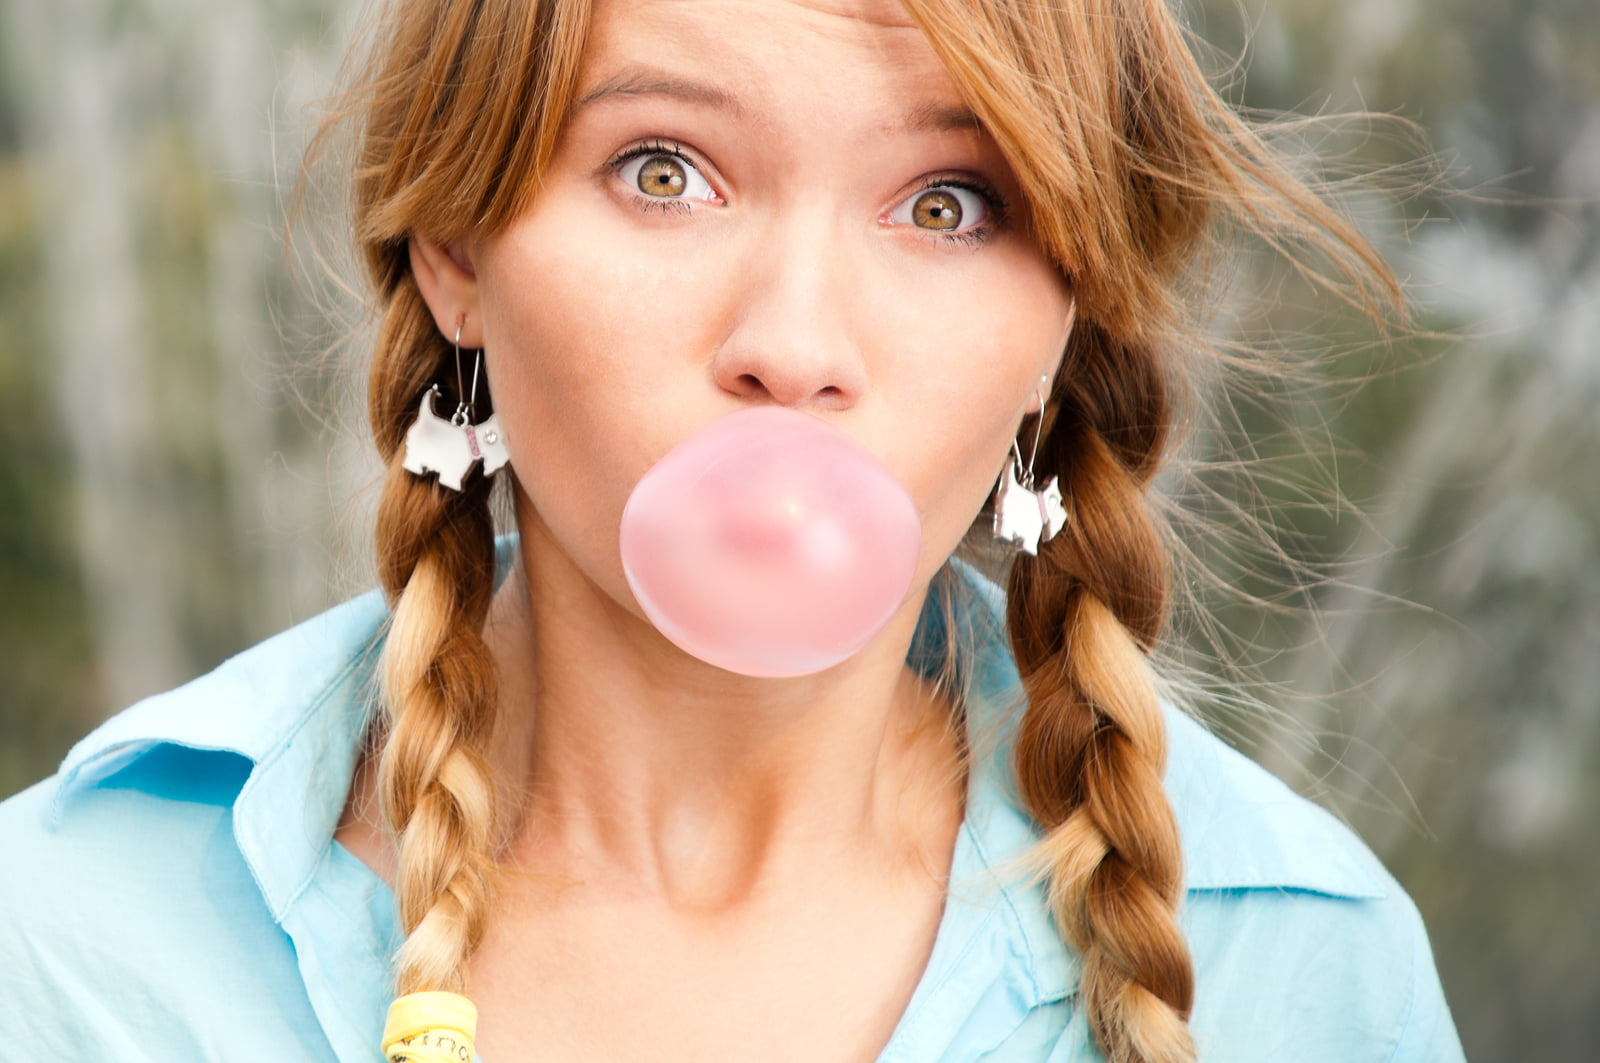 Spit it out study says chewing gum leads to chronic headaches